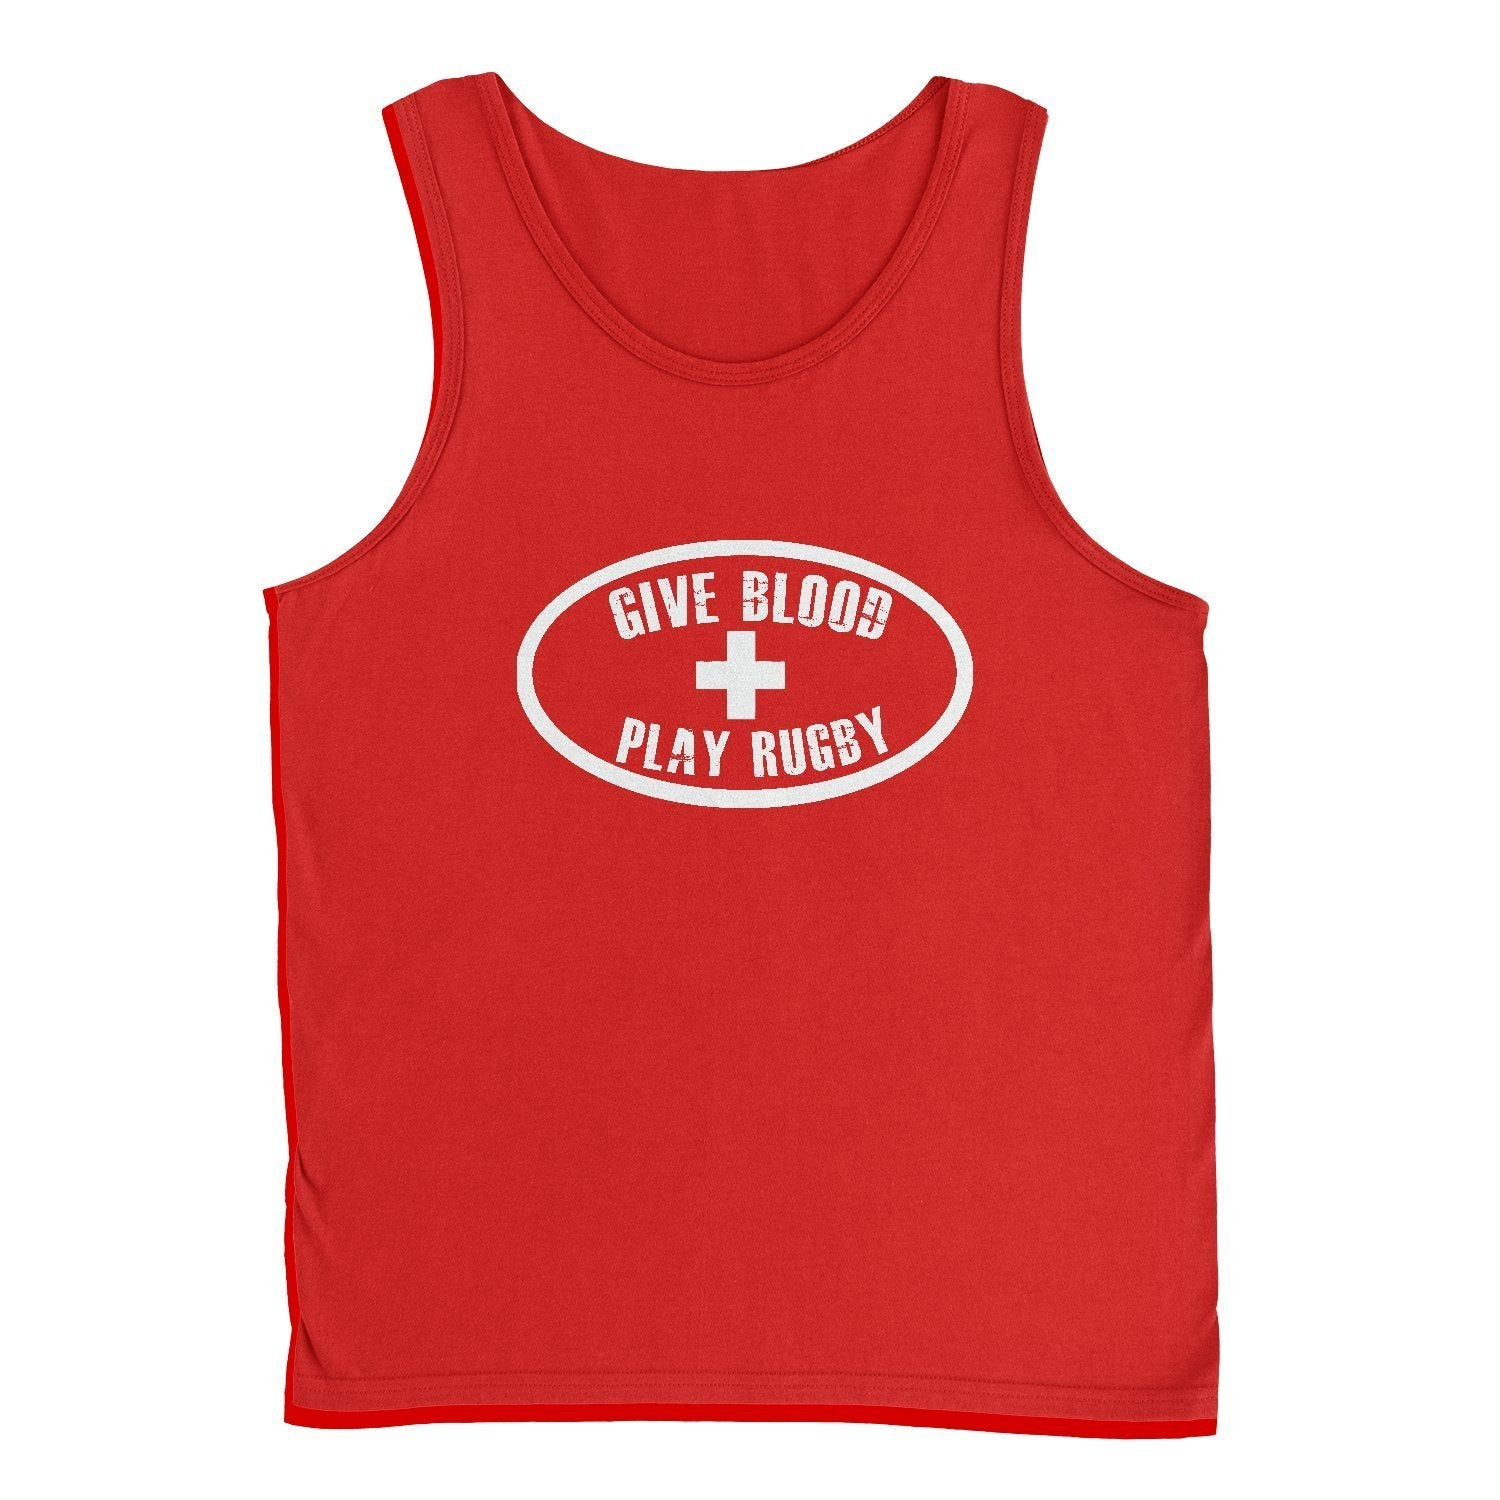 Graphic Tees - Give Blood Play Rugby Tank Top